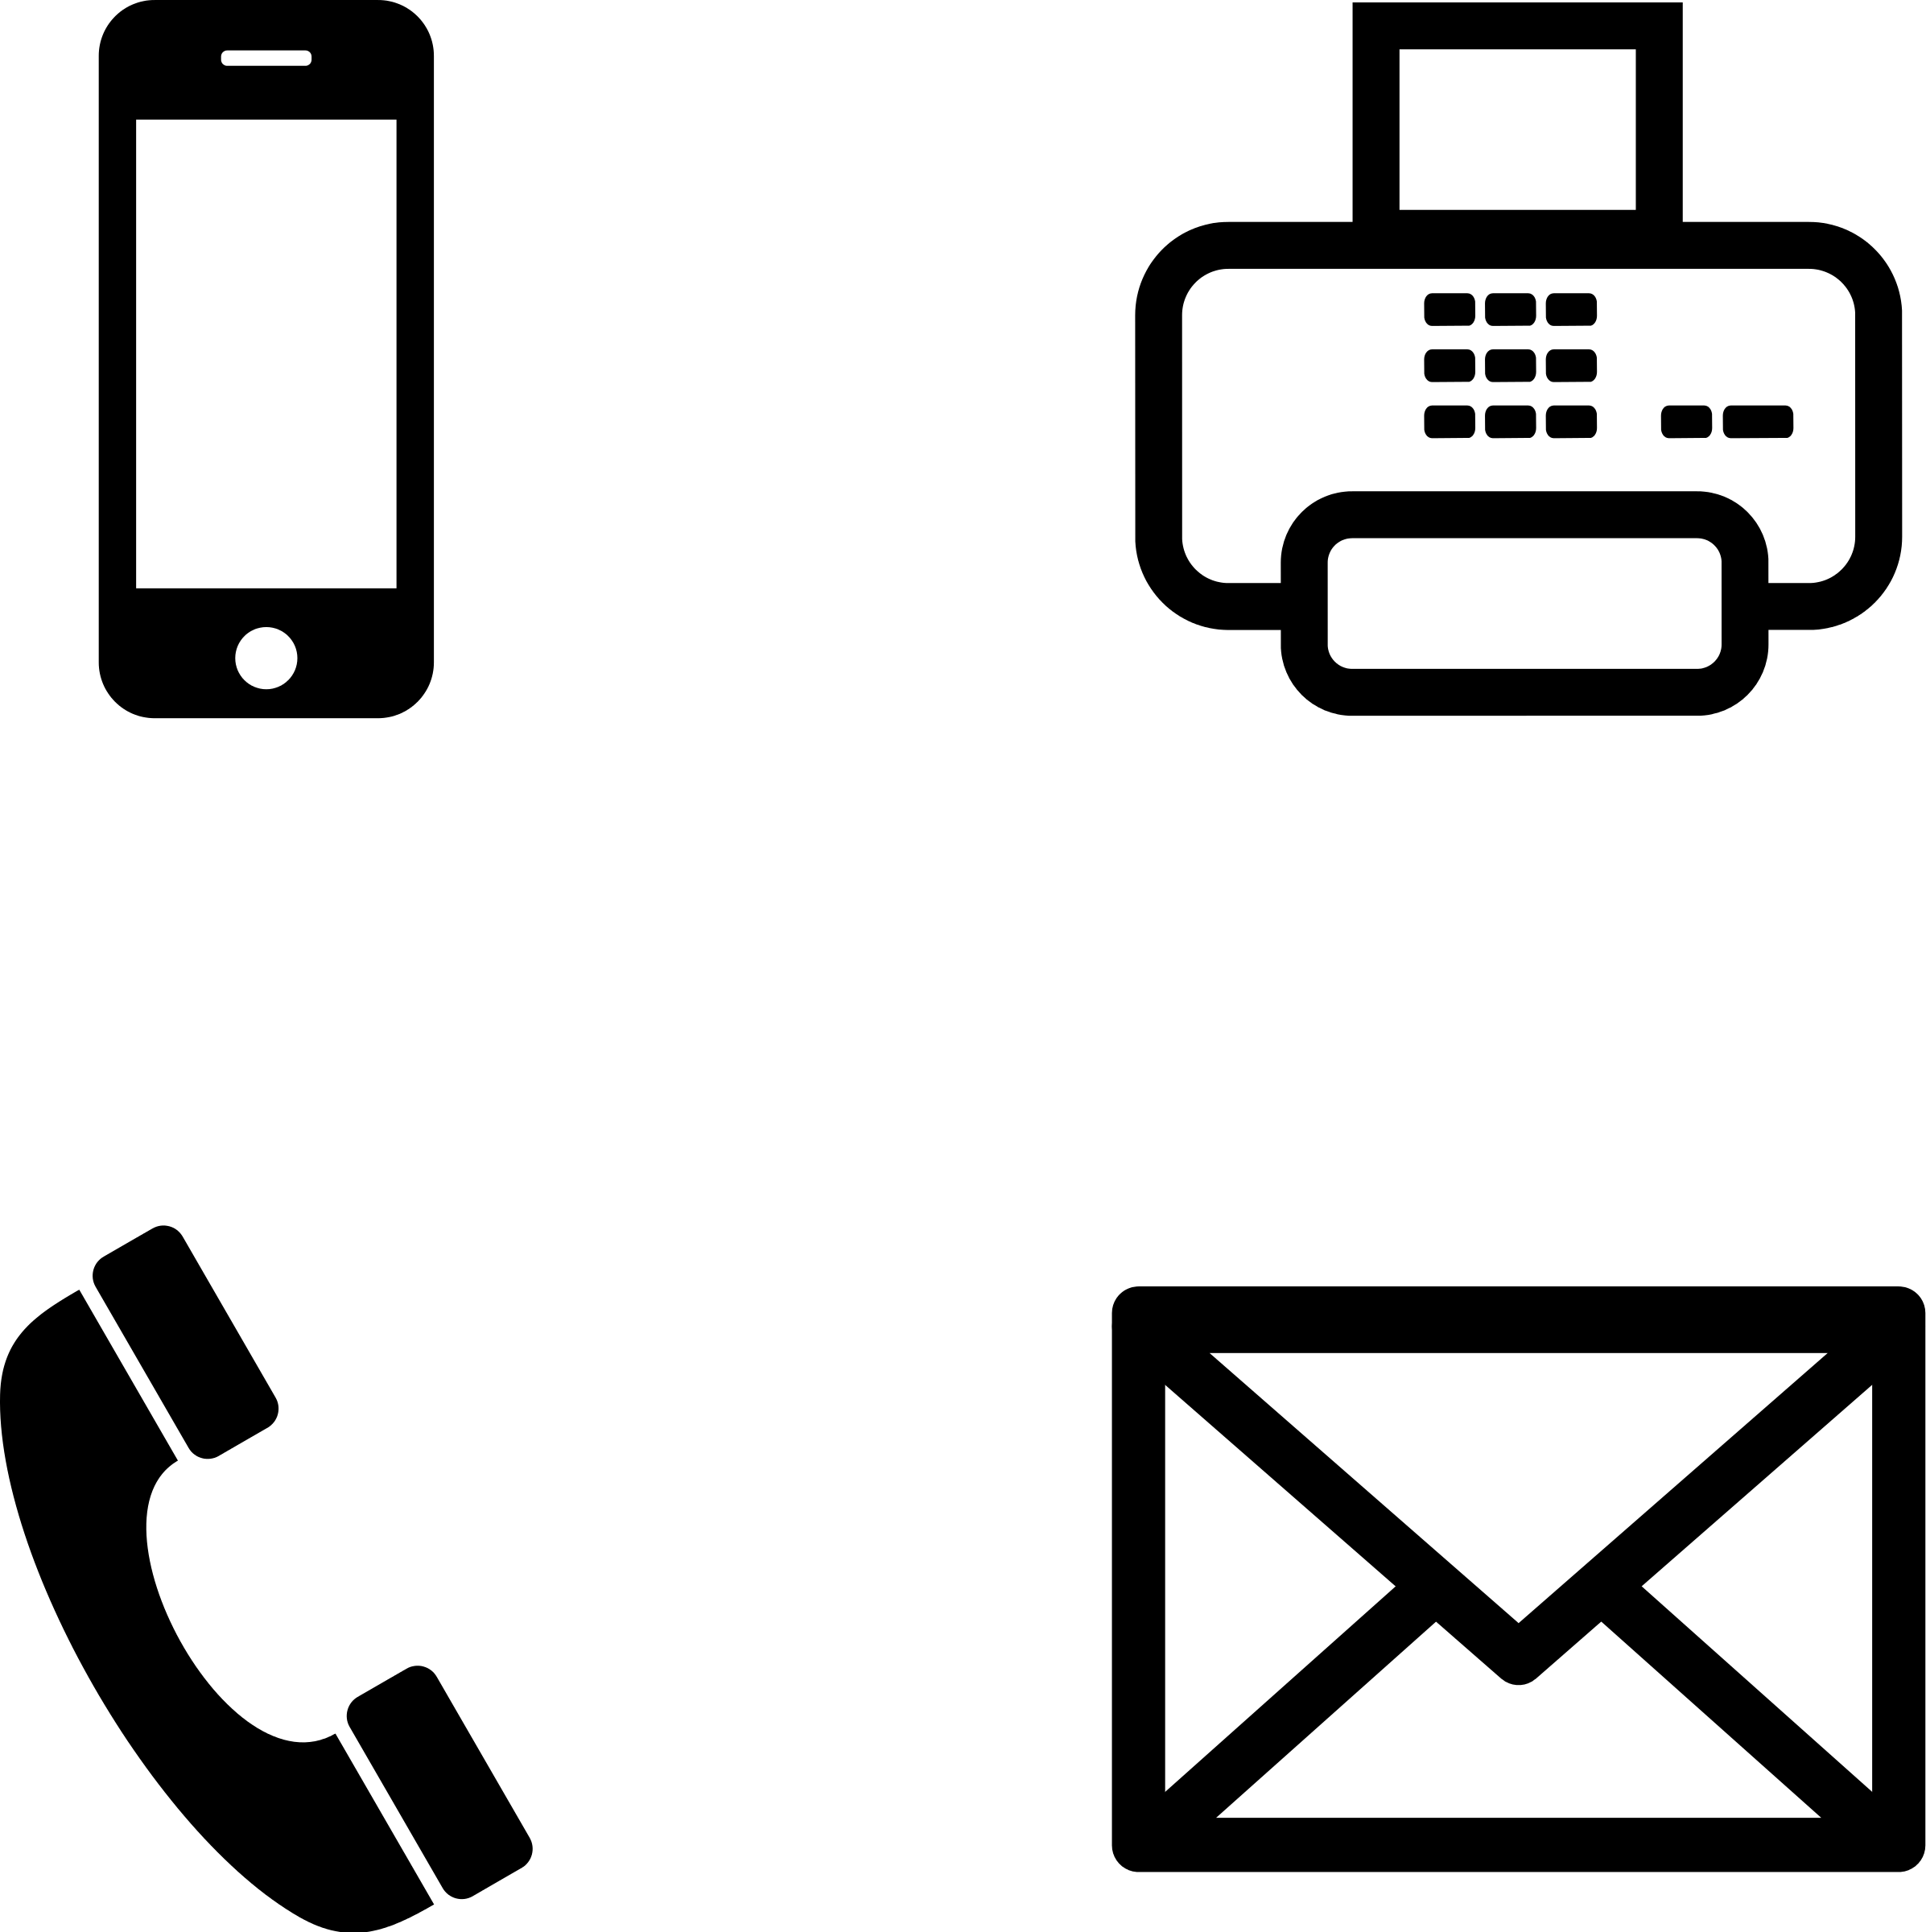 French clipart icon. Fax